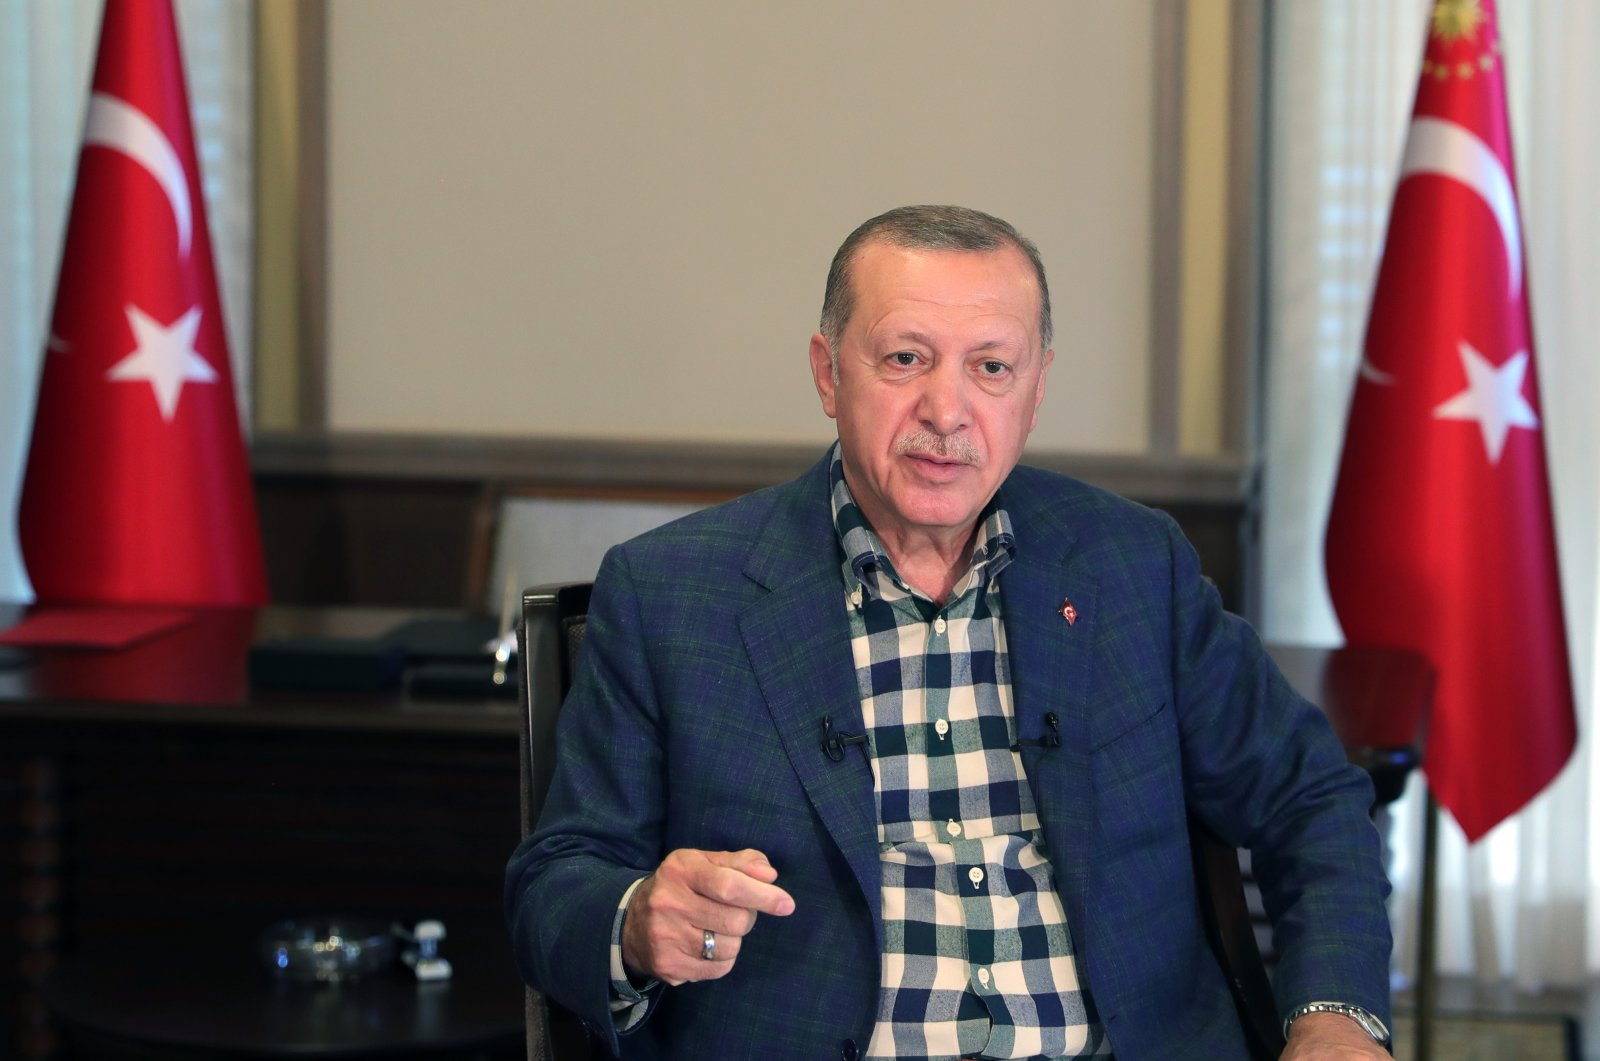 President Recep Tayyip Erdoğan addresses members of the ruling Justice and Development Party (AK Party) for Qurban Bayram greetings via video-link in Ankara, Turkey, Aug. 1, 2020. (AA Photo)